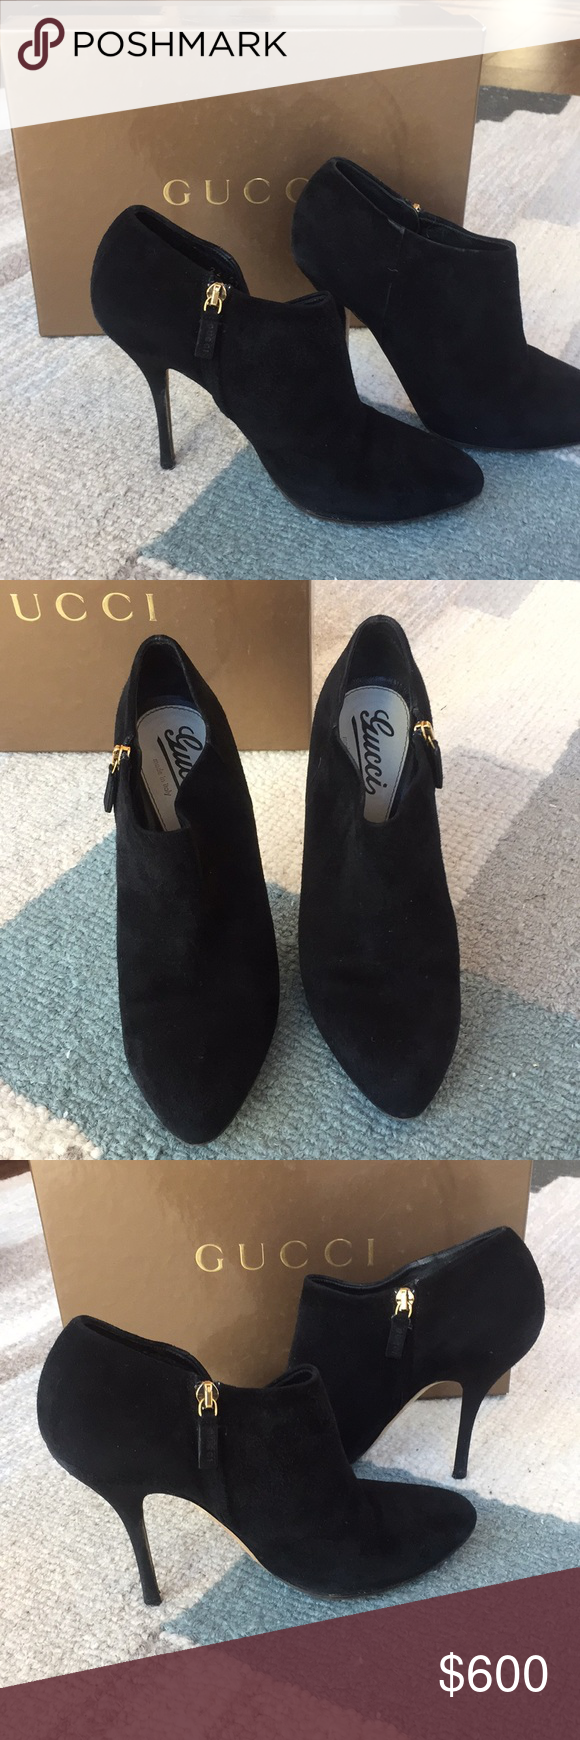 29b89585858fa Gucci suede booties Normal wear. Comes with dust bags